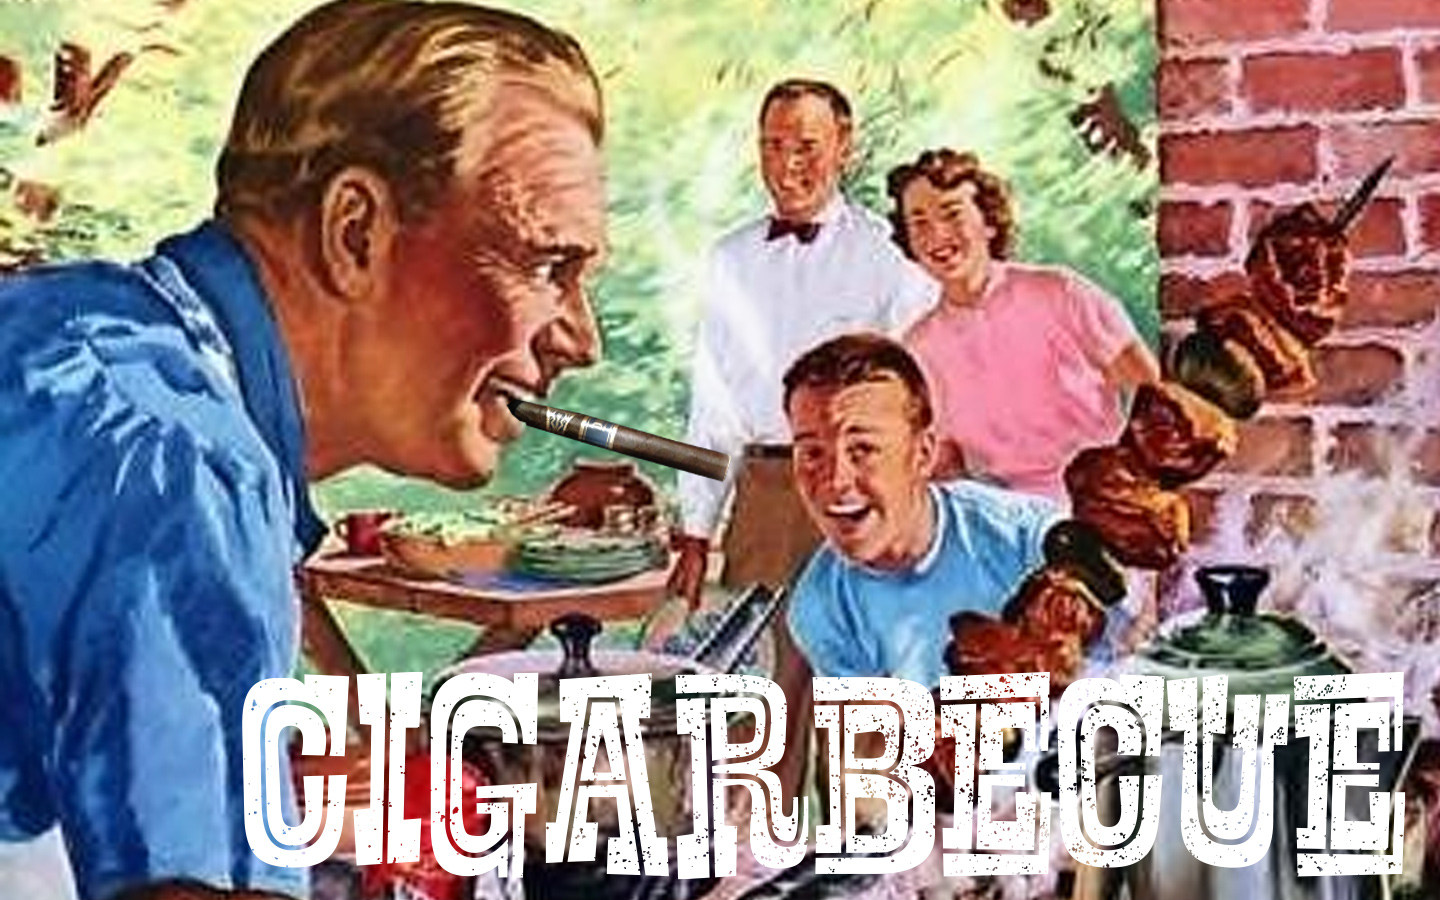 Cigarbecue